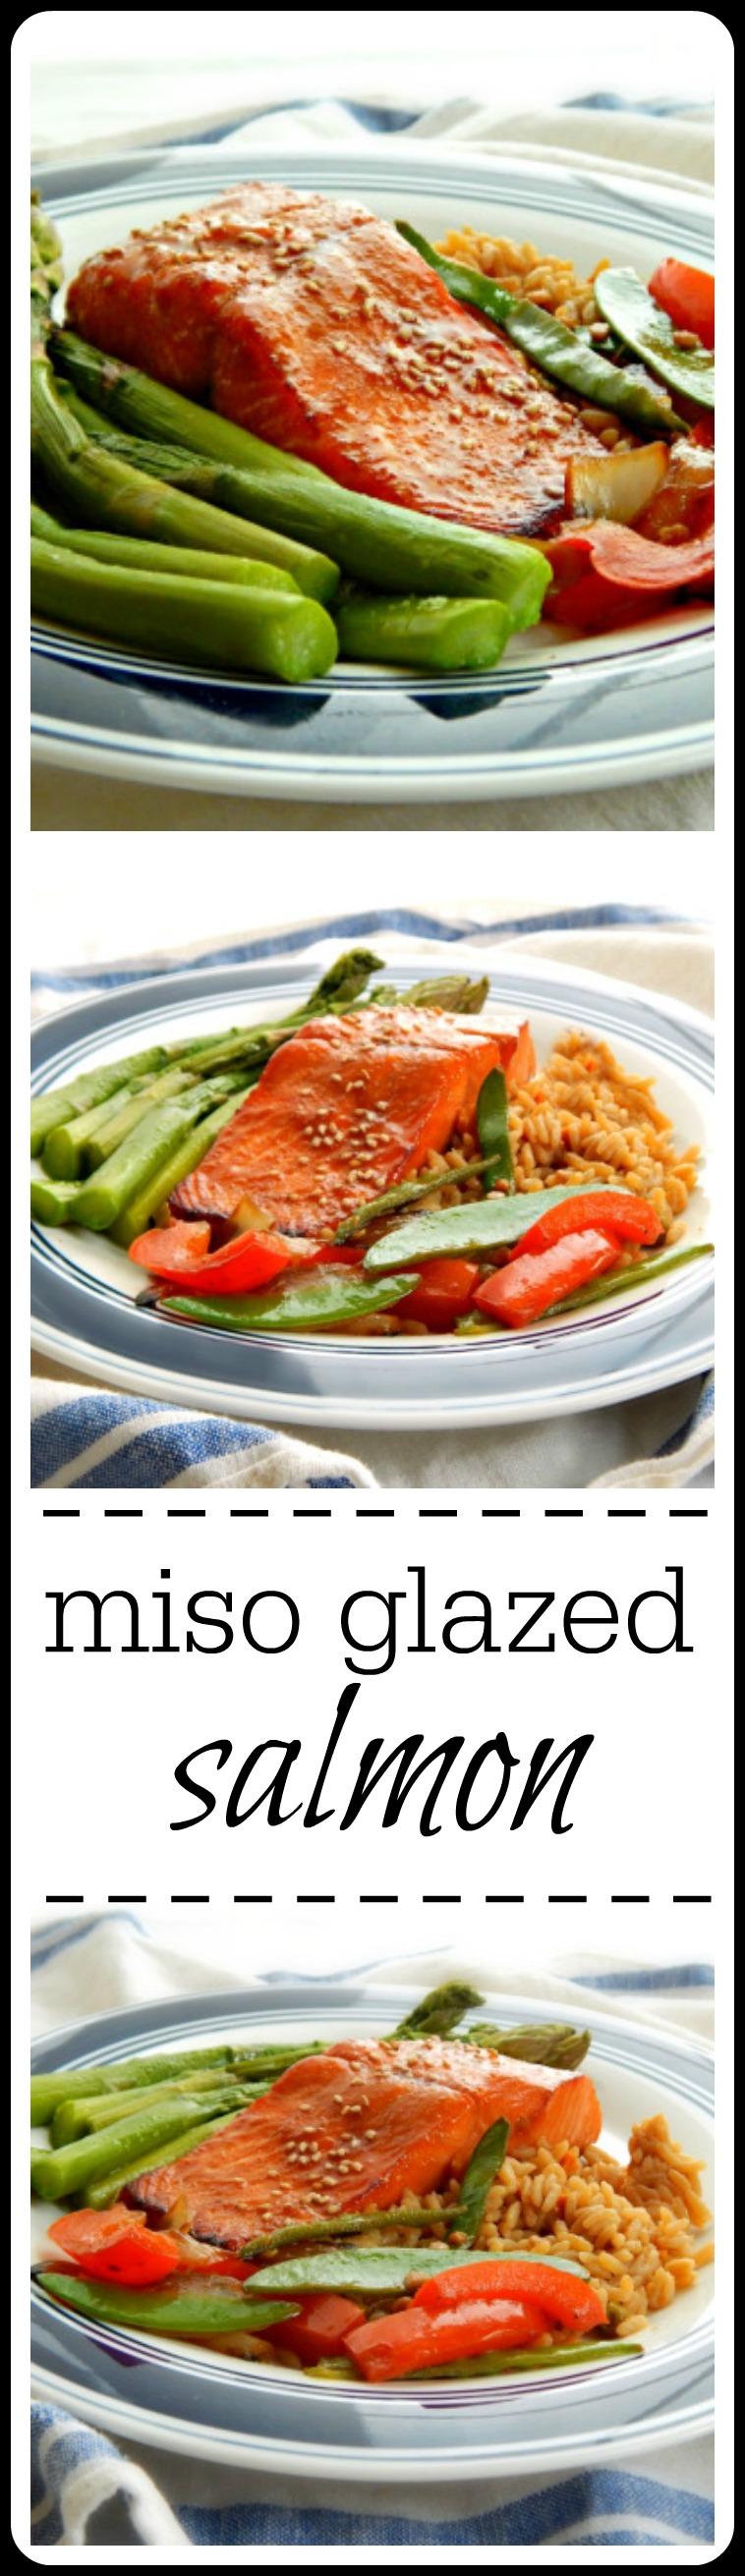 Miso Glazed Salmon - Super easy, super fast & Super tasty! Have a healthy dinner on the table in minutes! #MisoGlazedSalmon #MisoSalmon #EasySalmon